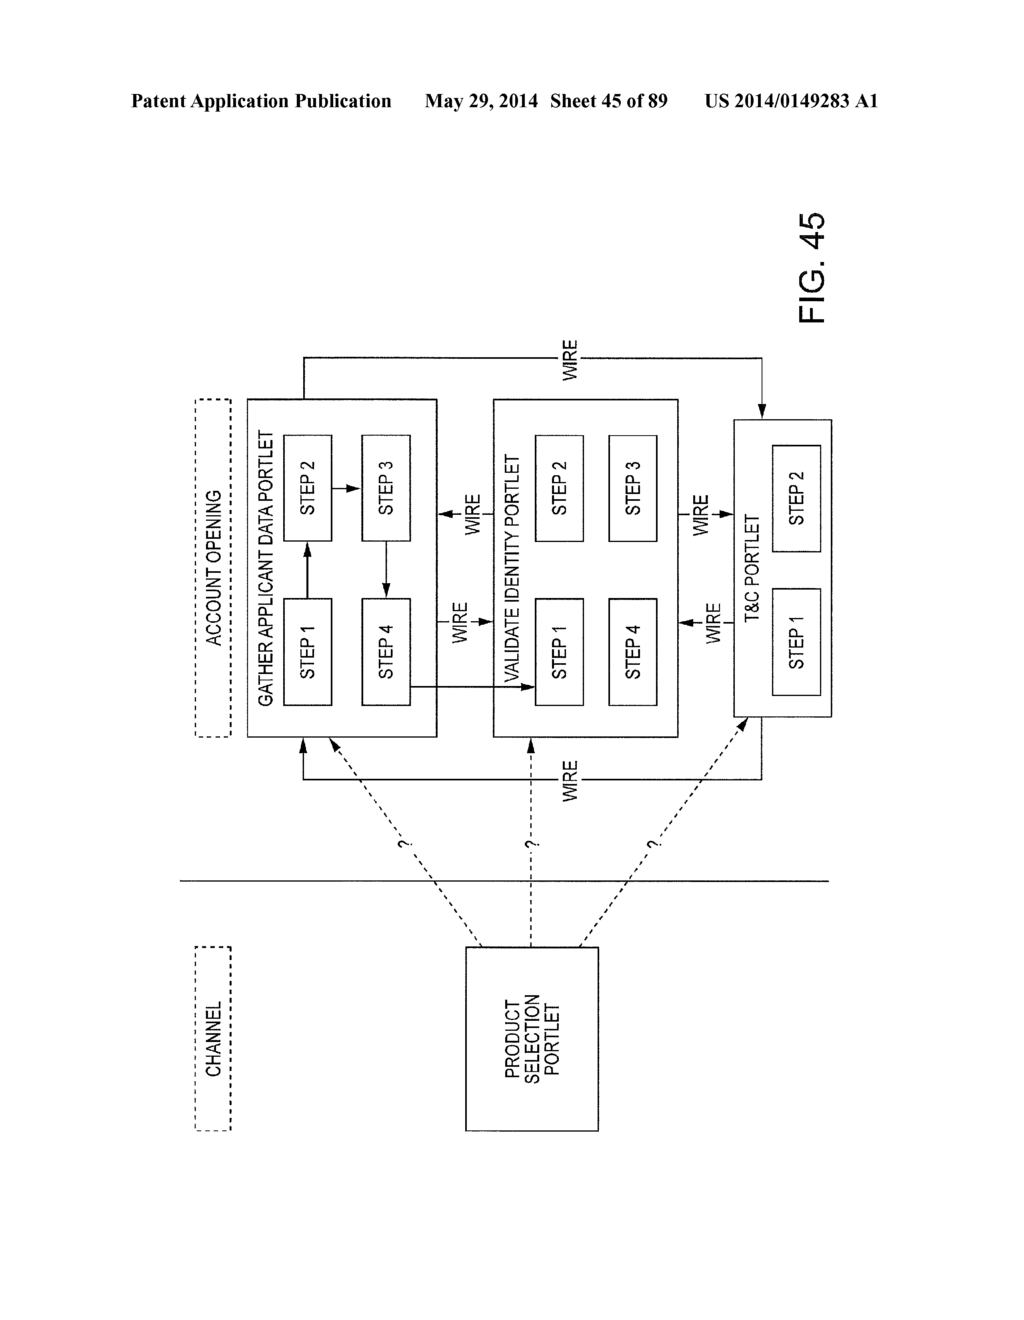 hight resolution of account opening computer system architecture and process for implementing same diagram schematic and image 46